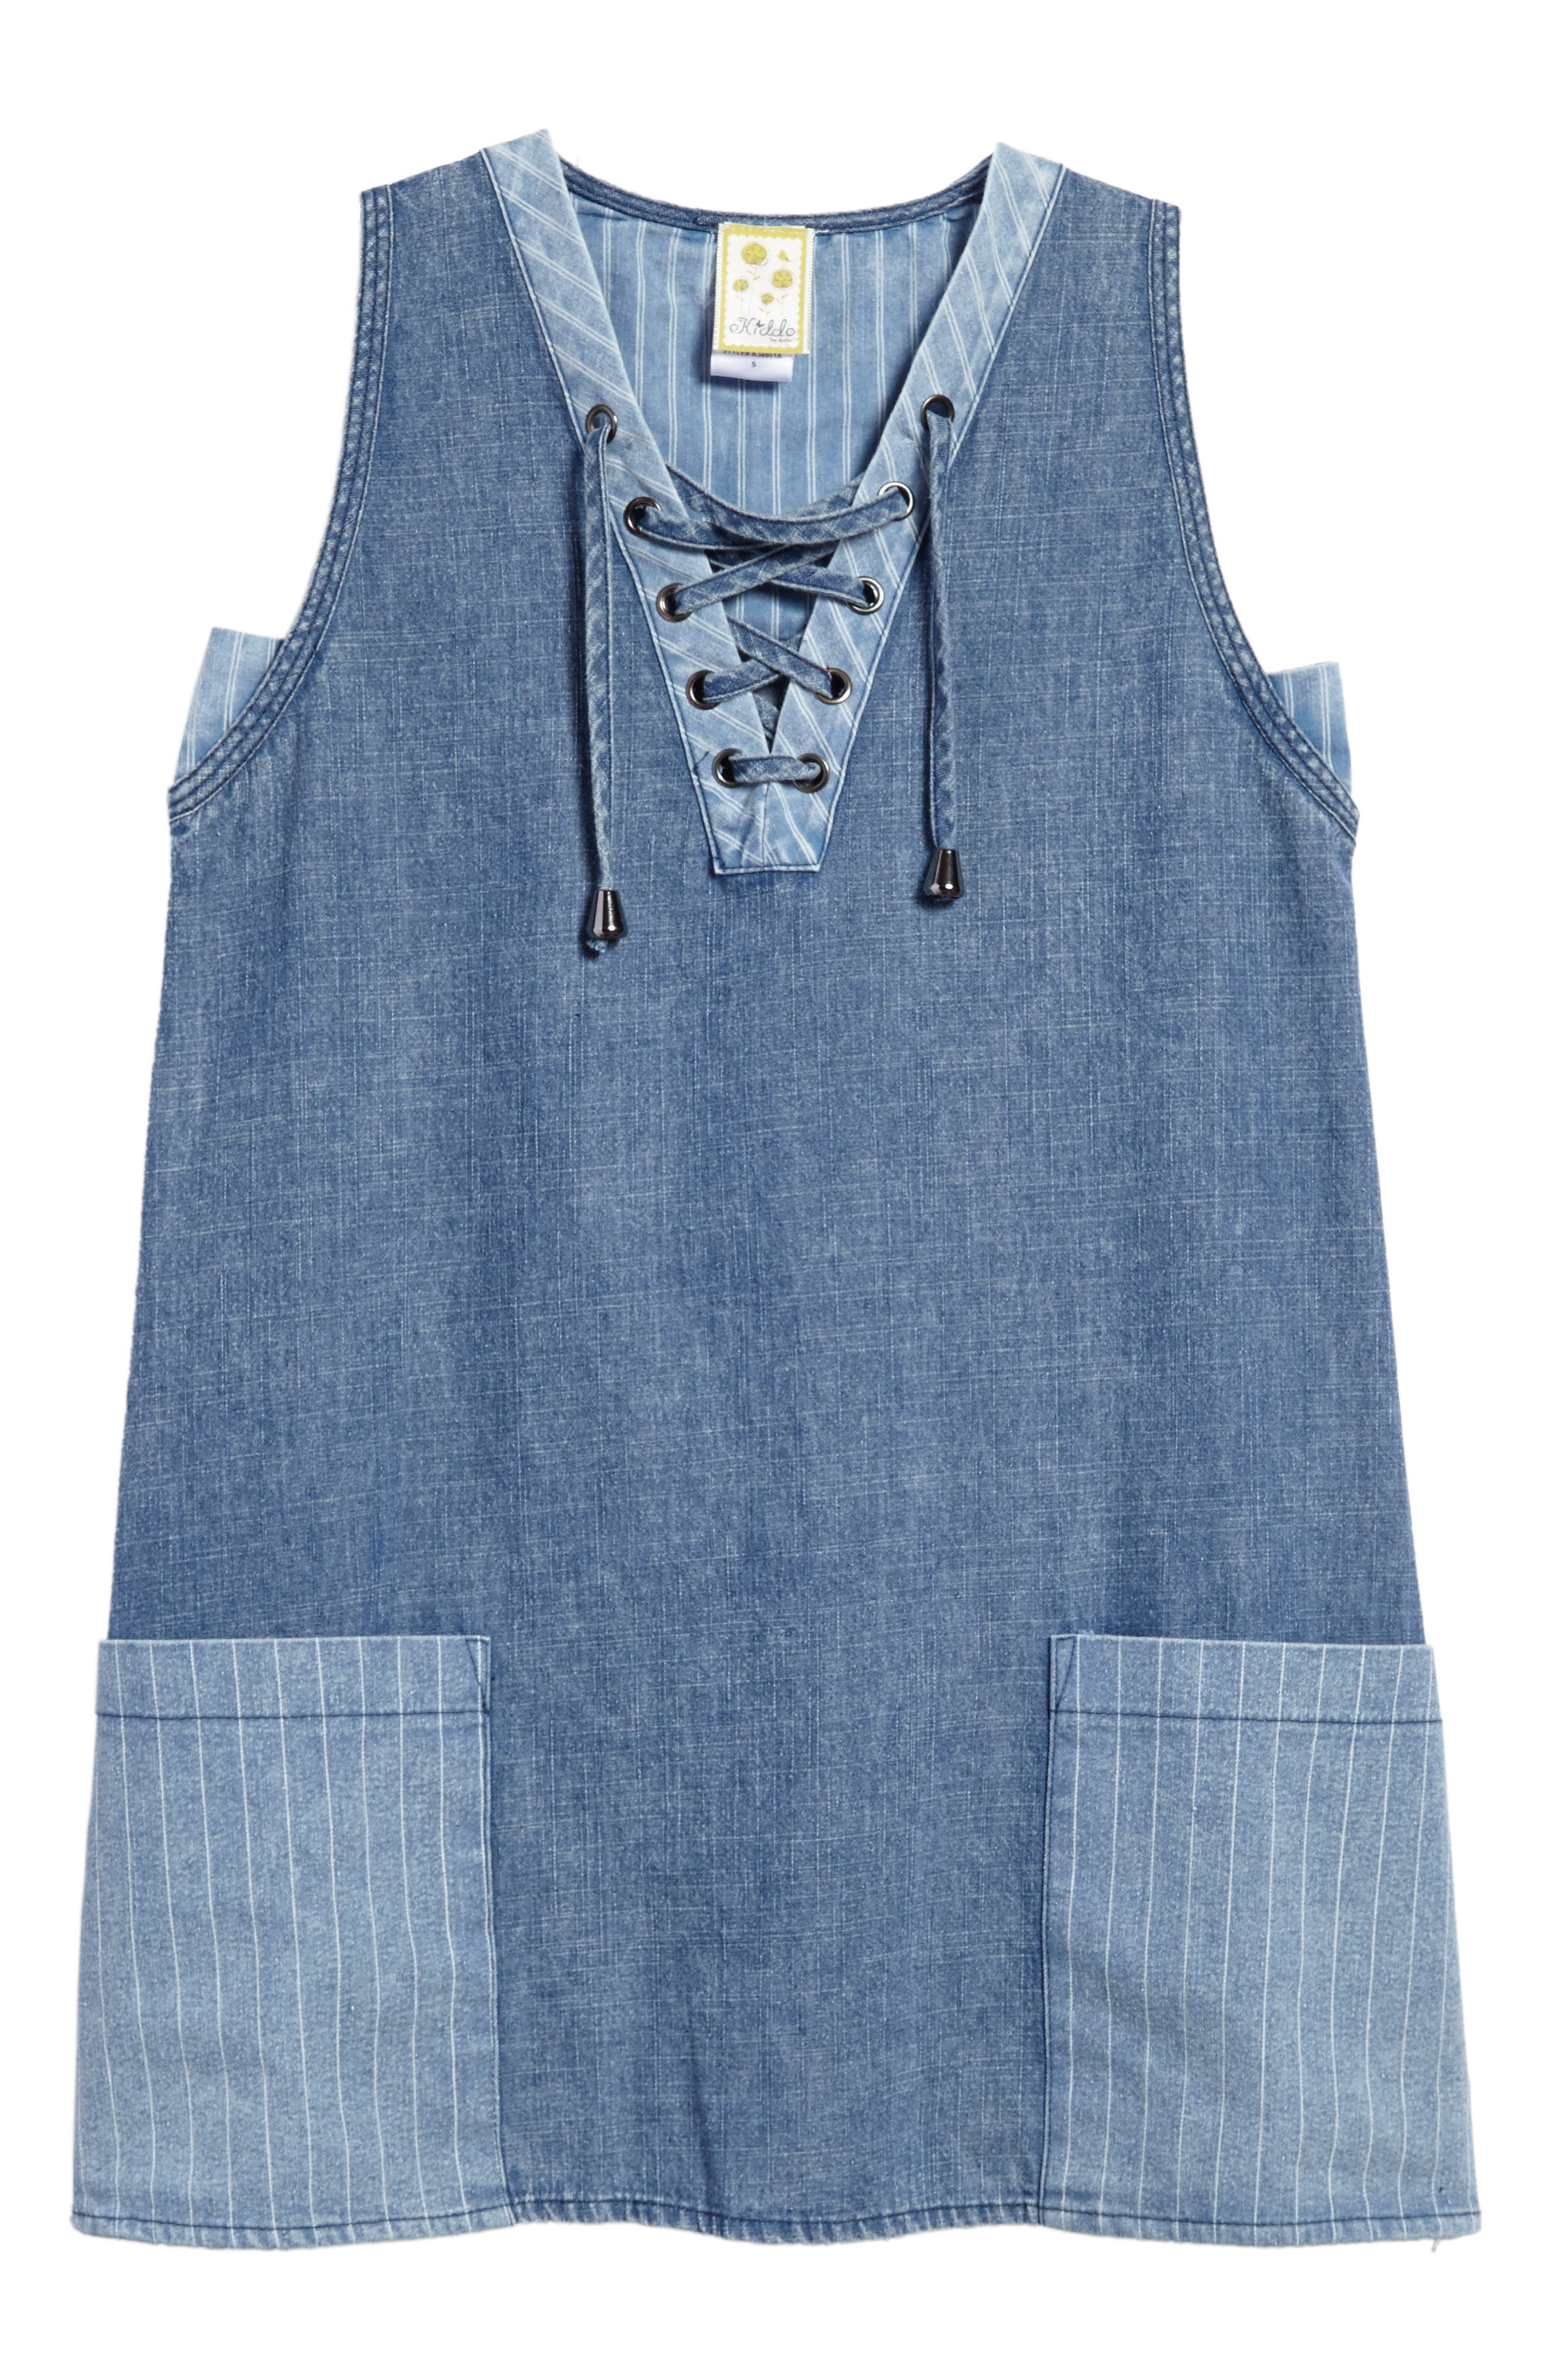 Main Image - Kiddo Denim Shift Dress (Big Girls)